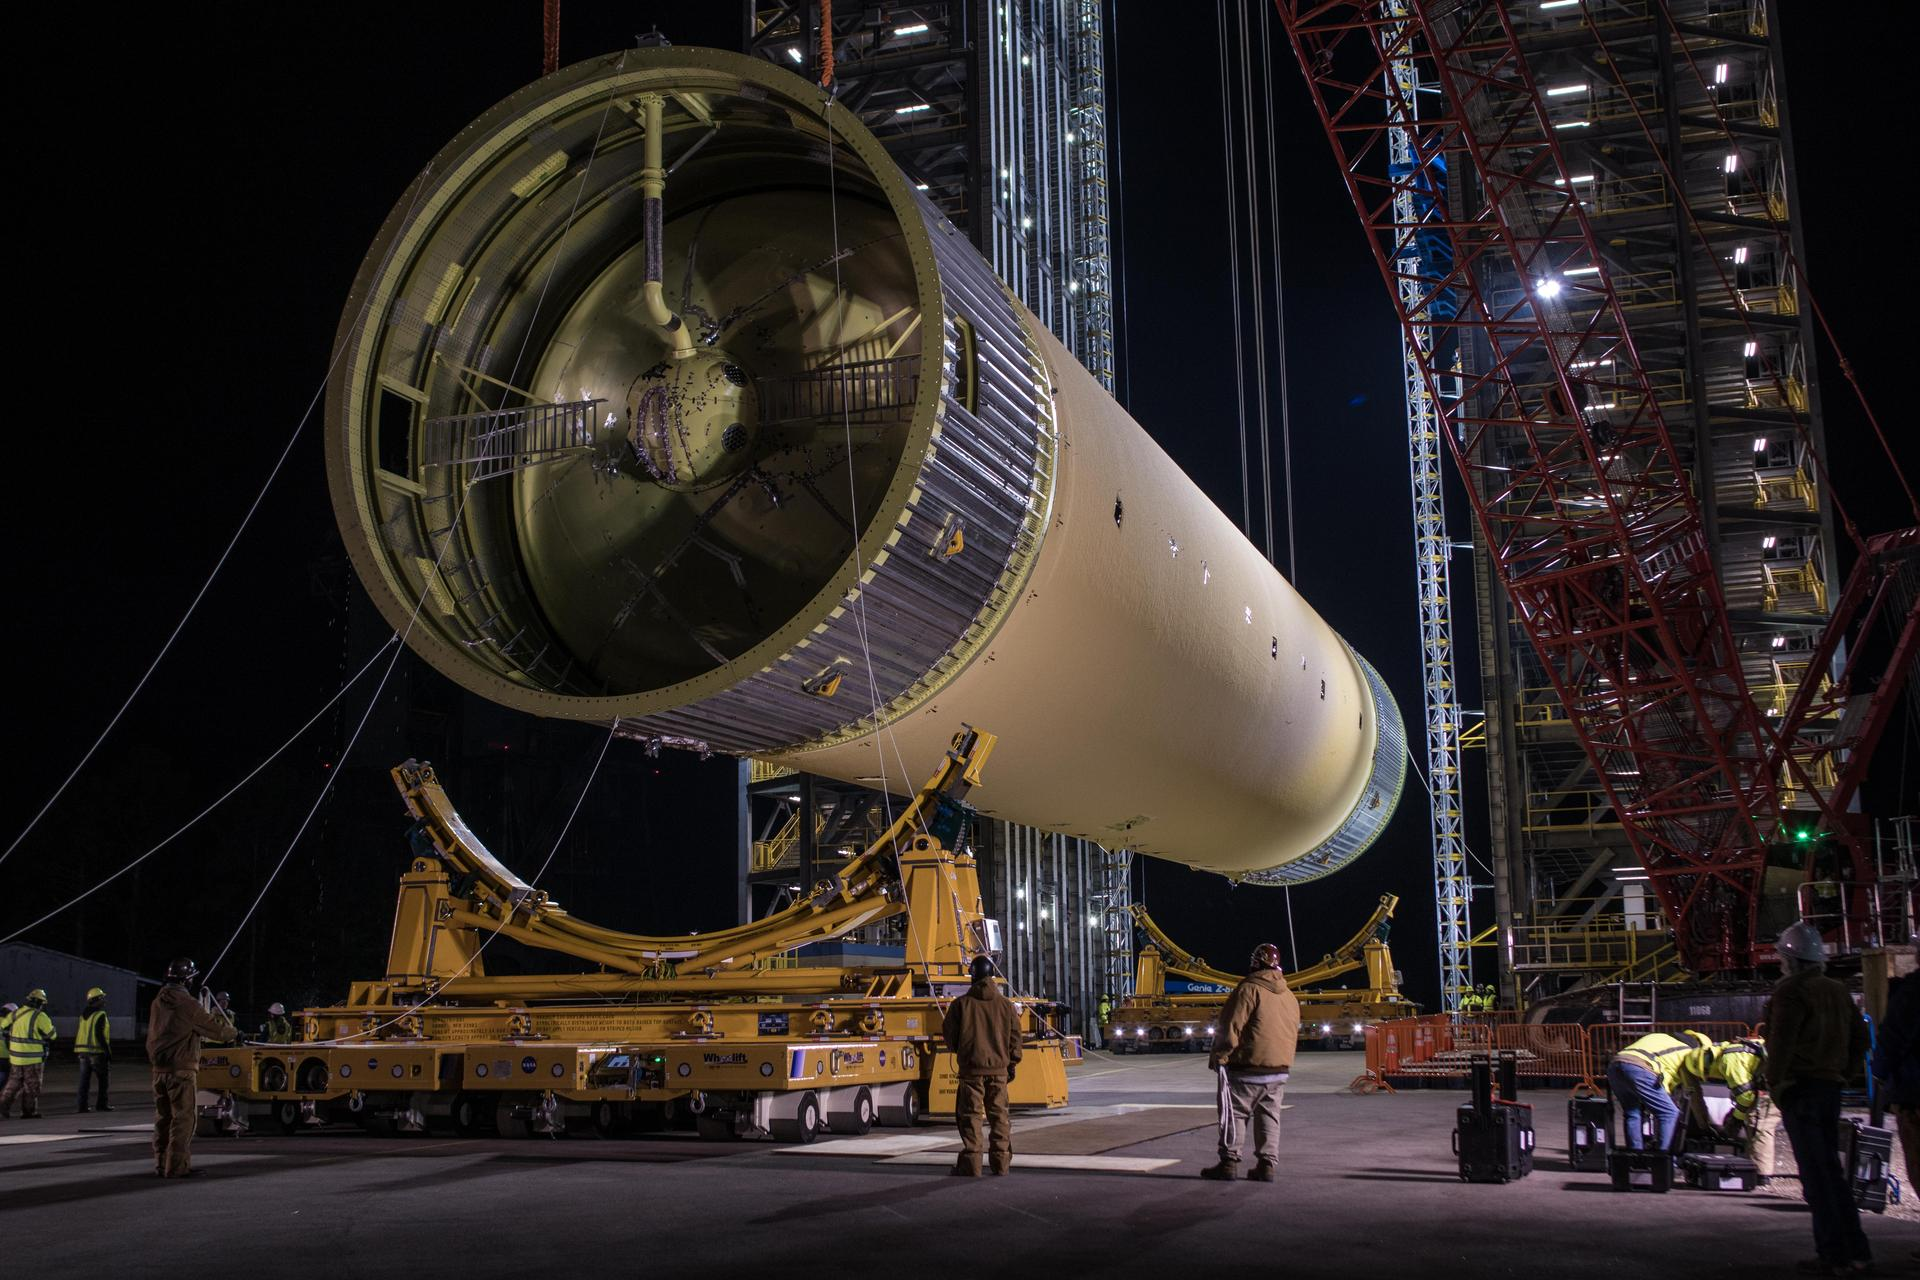 The SLS rocket's 45-meter long liquid hydrogen tank structural test article is loaded into Test Stand 4693 at NASA's Marshall Space Flight Center in January.